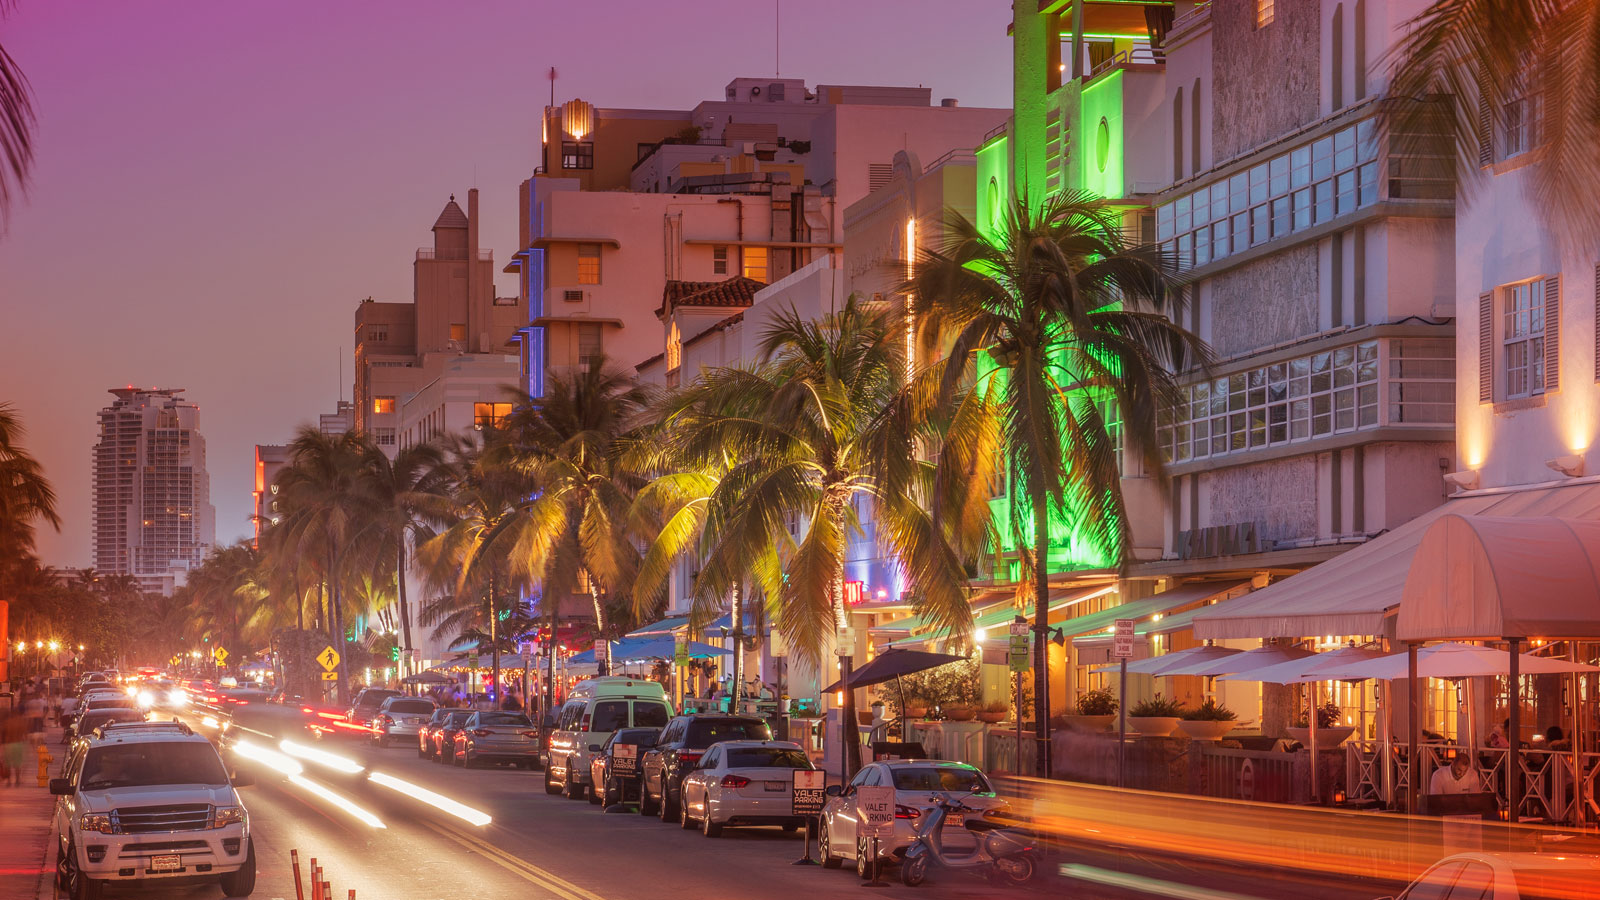 Cabanas, Cold Brews, and Cocktail Crawls: The 4-day Weekend in Miami, Florida